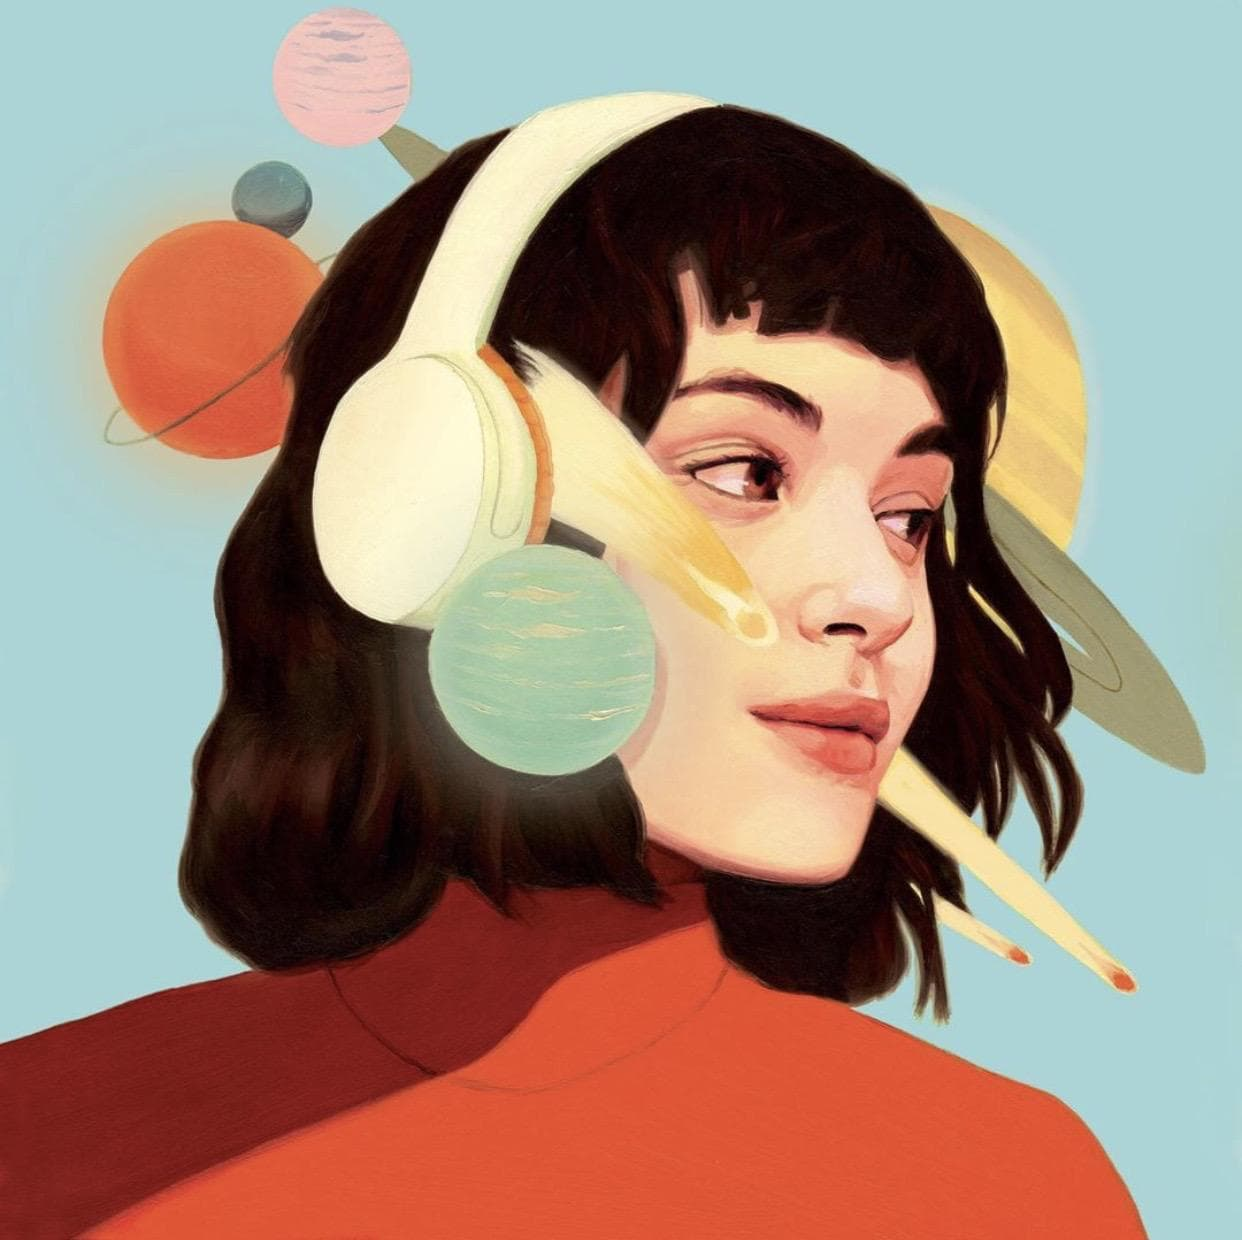 Portrait Painting of a woman with headphones by David de las Heras